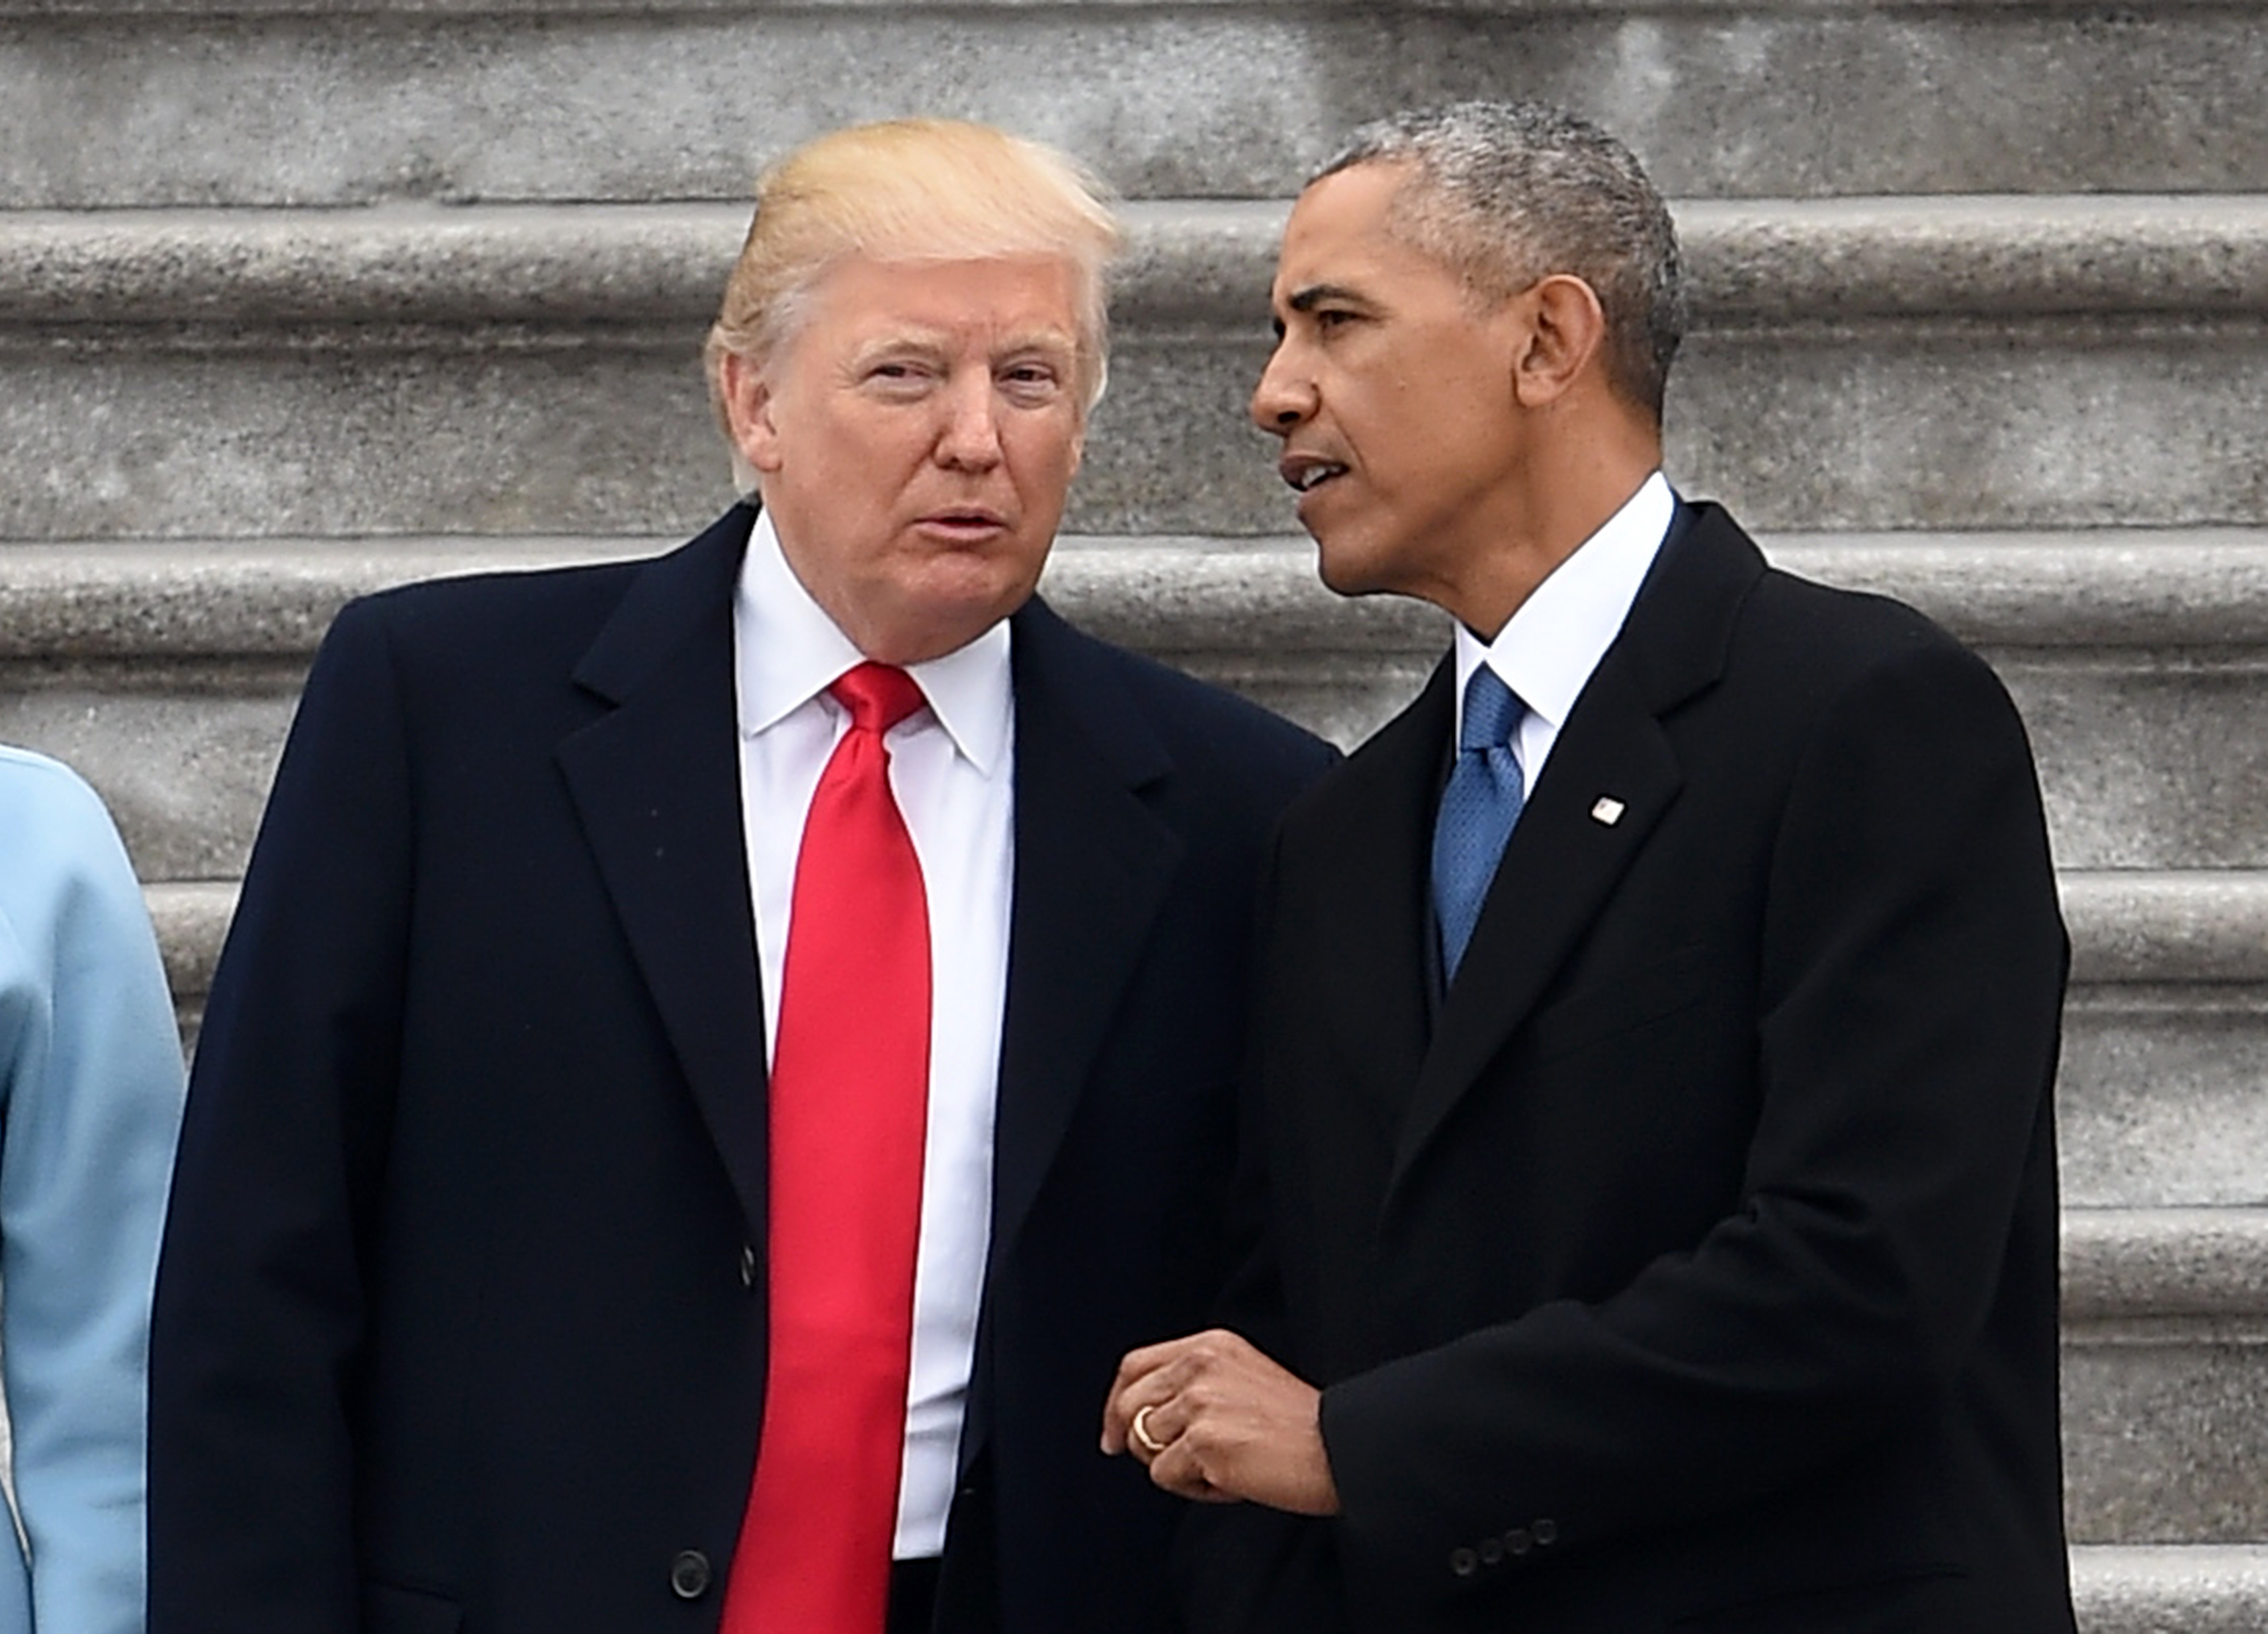 Donald Trump y Barack Obama hablan después de la ceremonia de posesión en Washington. (Crédito: ROBYN BECK/AFP/Getty Images)